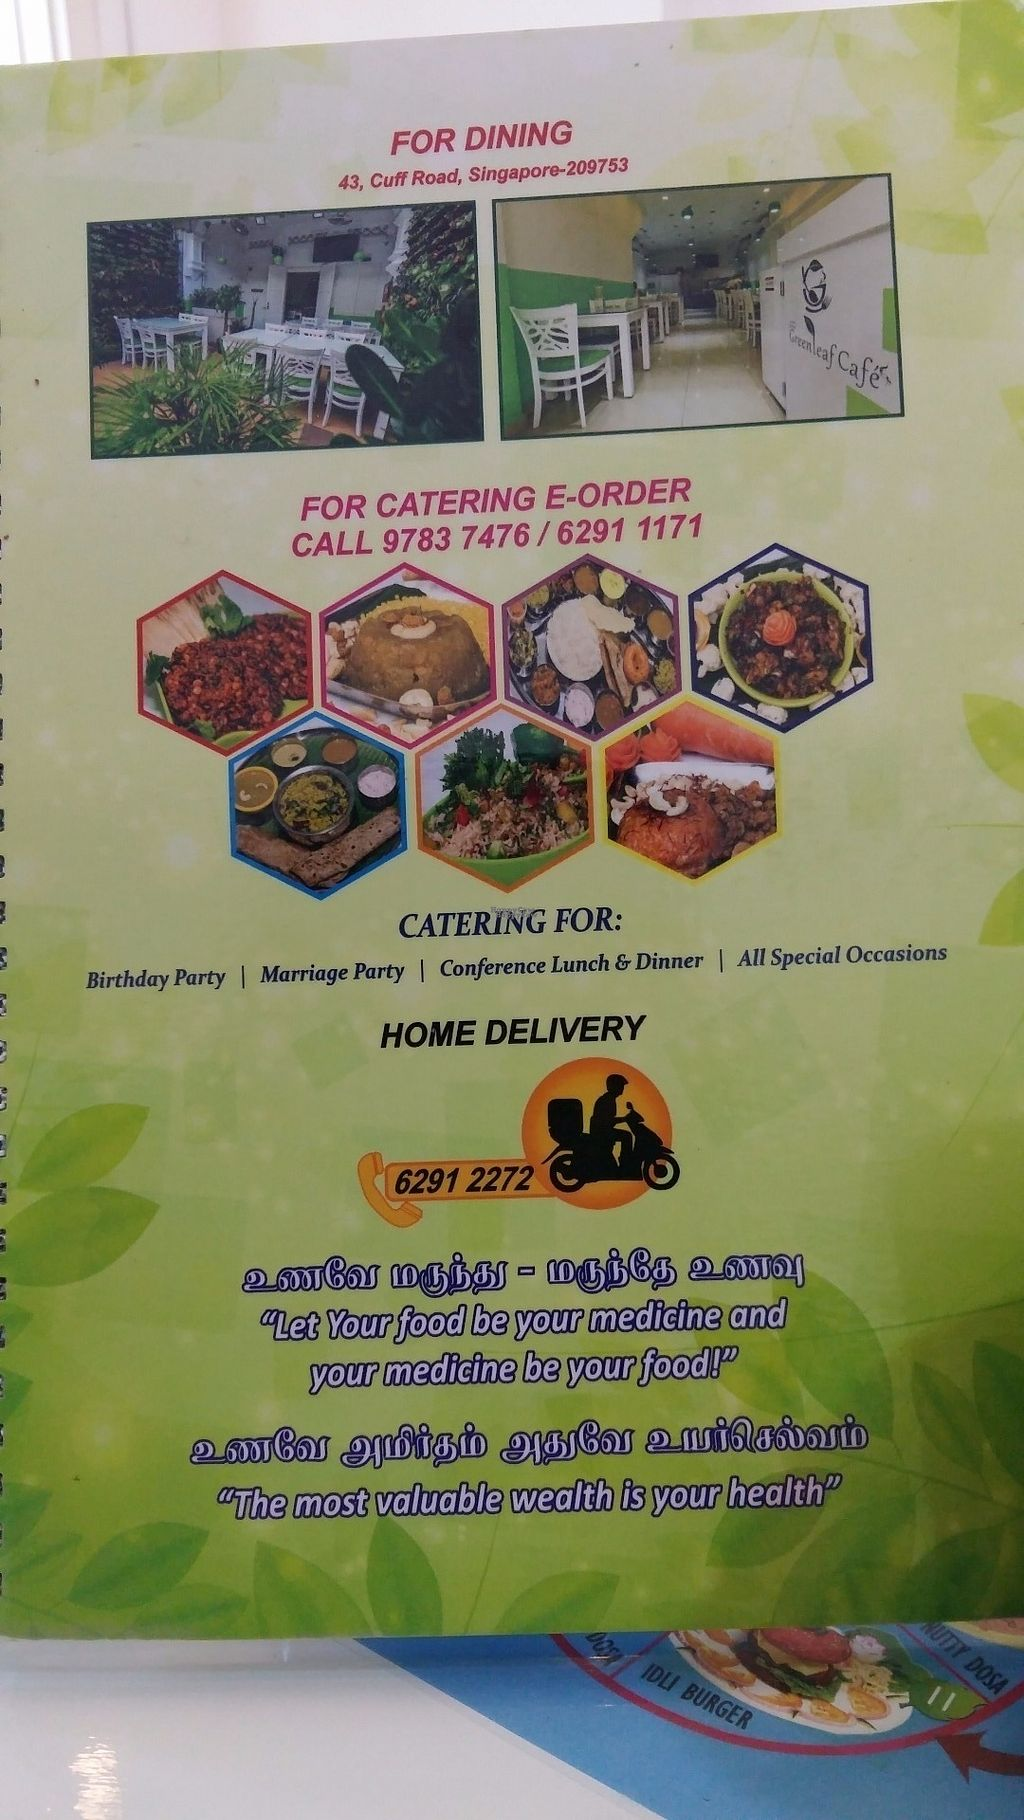 """Photo of Greenleaf Cafe  by <a href=""""/members/profile/Sai79"""">Sai79</a> <br/>menu cover of Green Leaf Cafe <br/> October 4, 2016  - <a href='/contact/abuse/image/66186/179605'>Report</a>"""